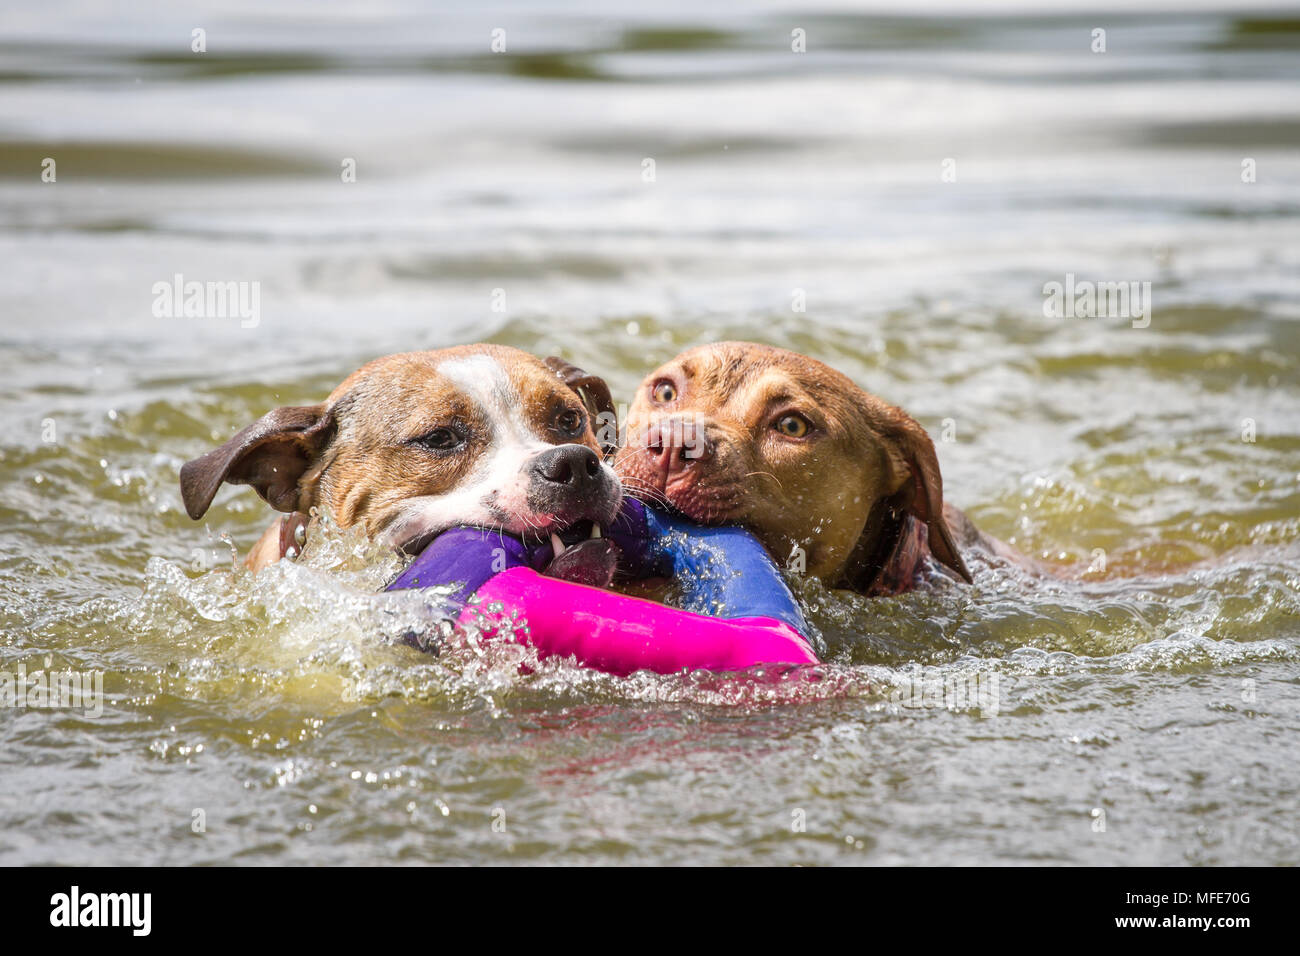 Two young dogs swimming and fetching a toy (American Pit Bull Terrier & Working Pit Bulldog) - Stock Image